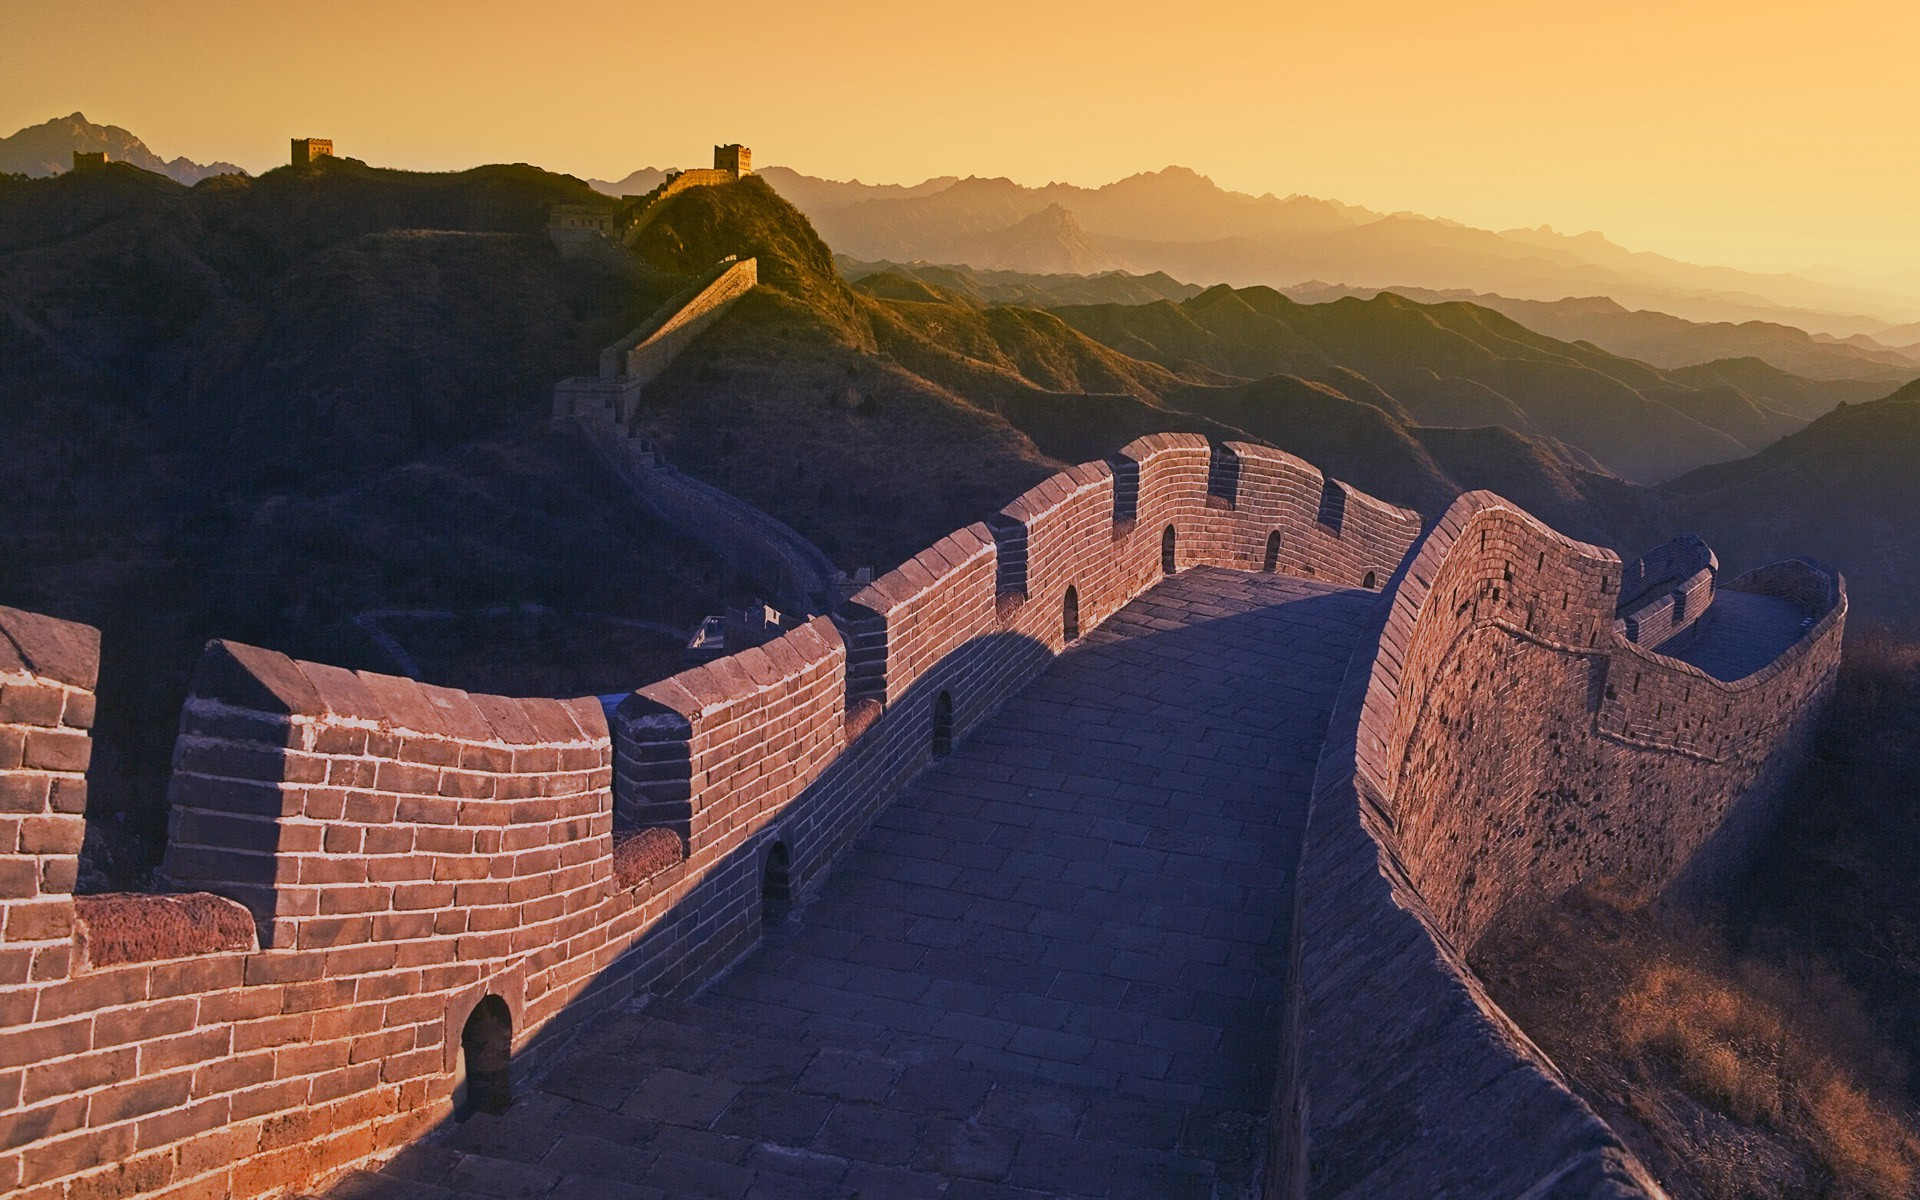 The Great Wall Movie Wallpaper Hd China Great Wall Of China Architecture Sunset Hill